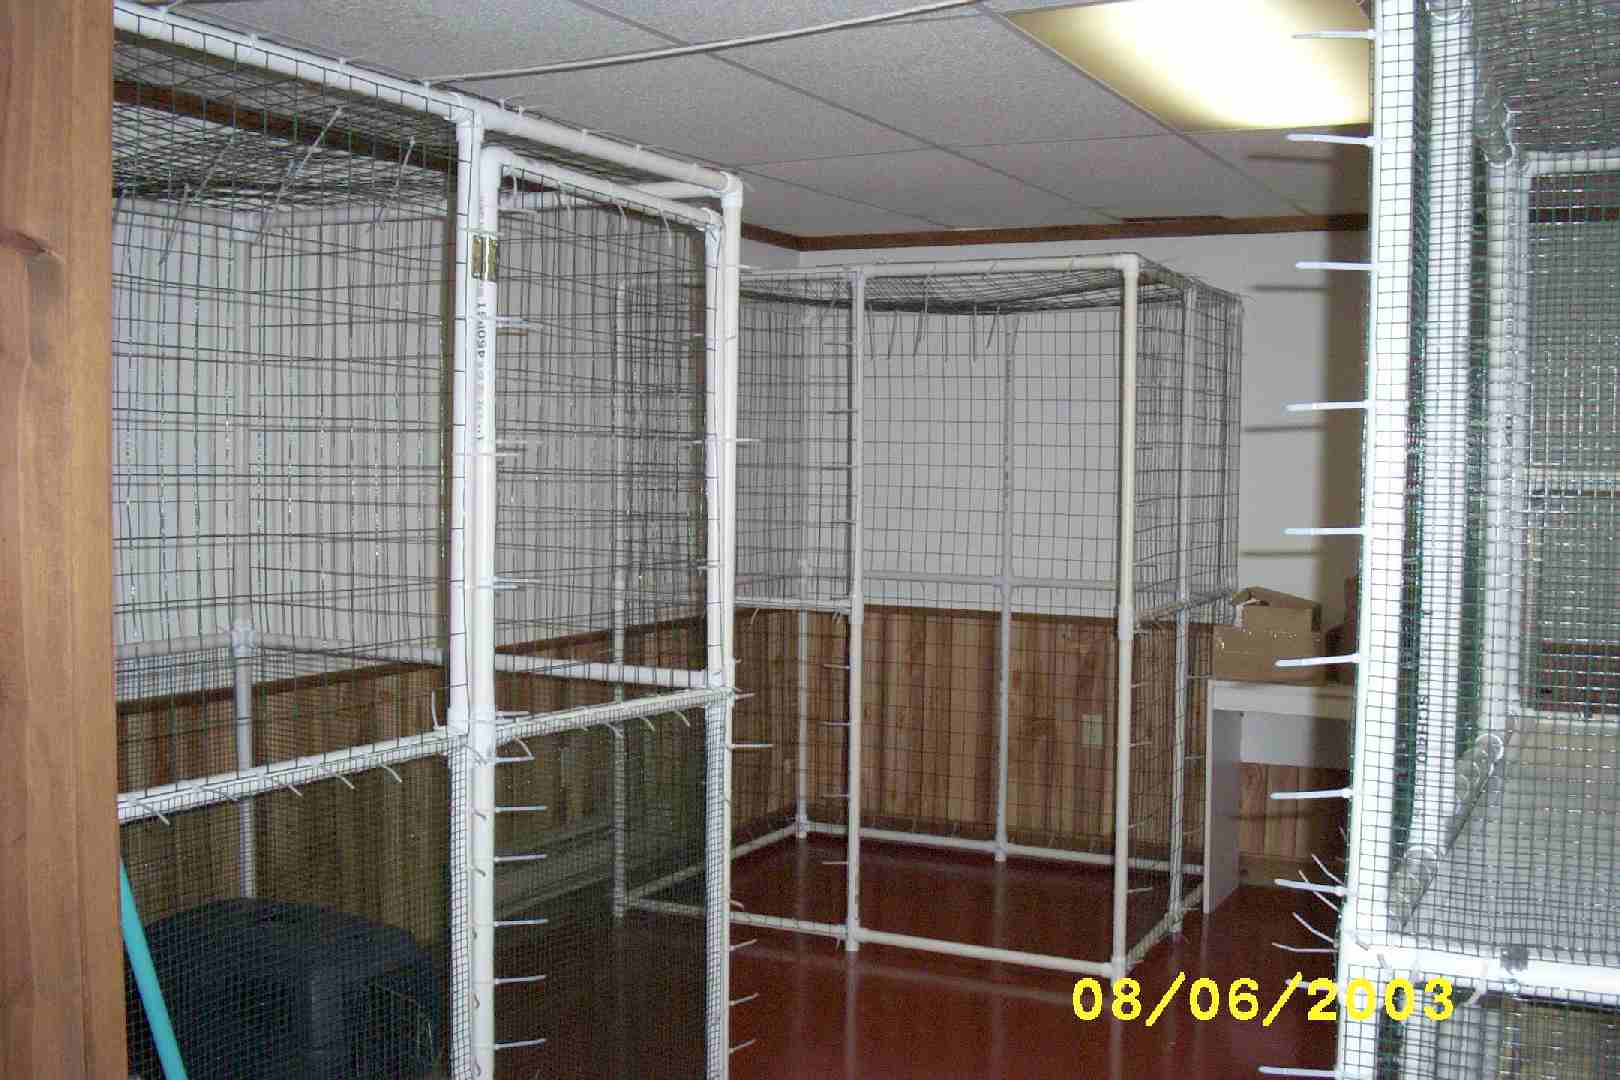 Cat cages made of pvc large cat cages rover company new for Pvc rabbit cage